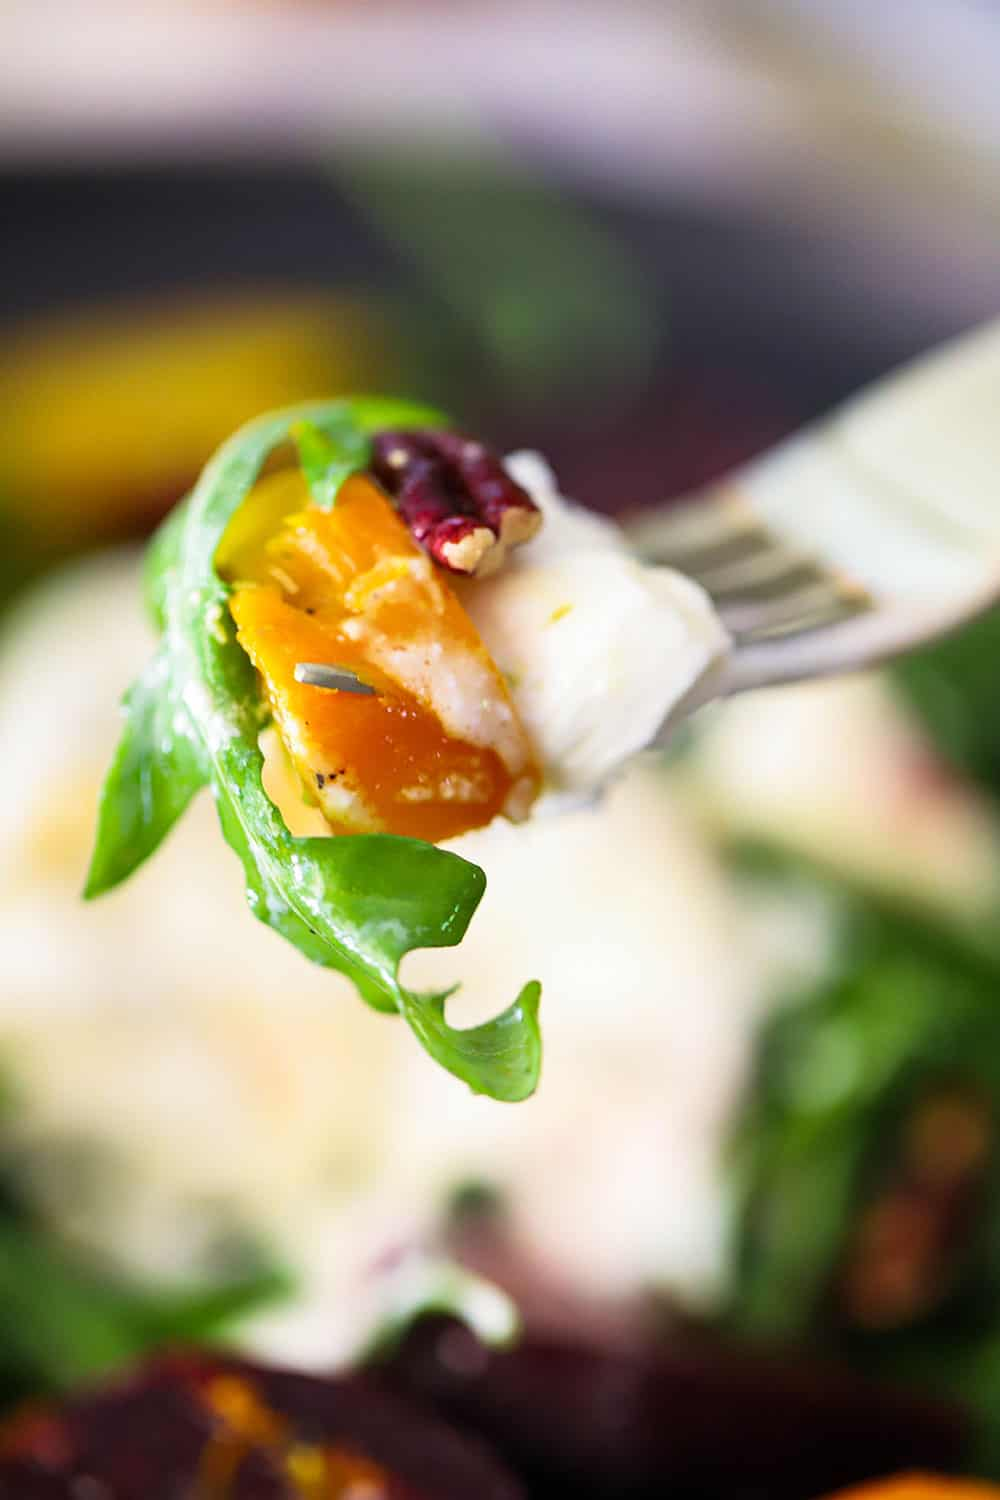 A fork holding up a piece of burrata cheese, roasted golden beet, and arugula salad.